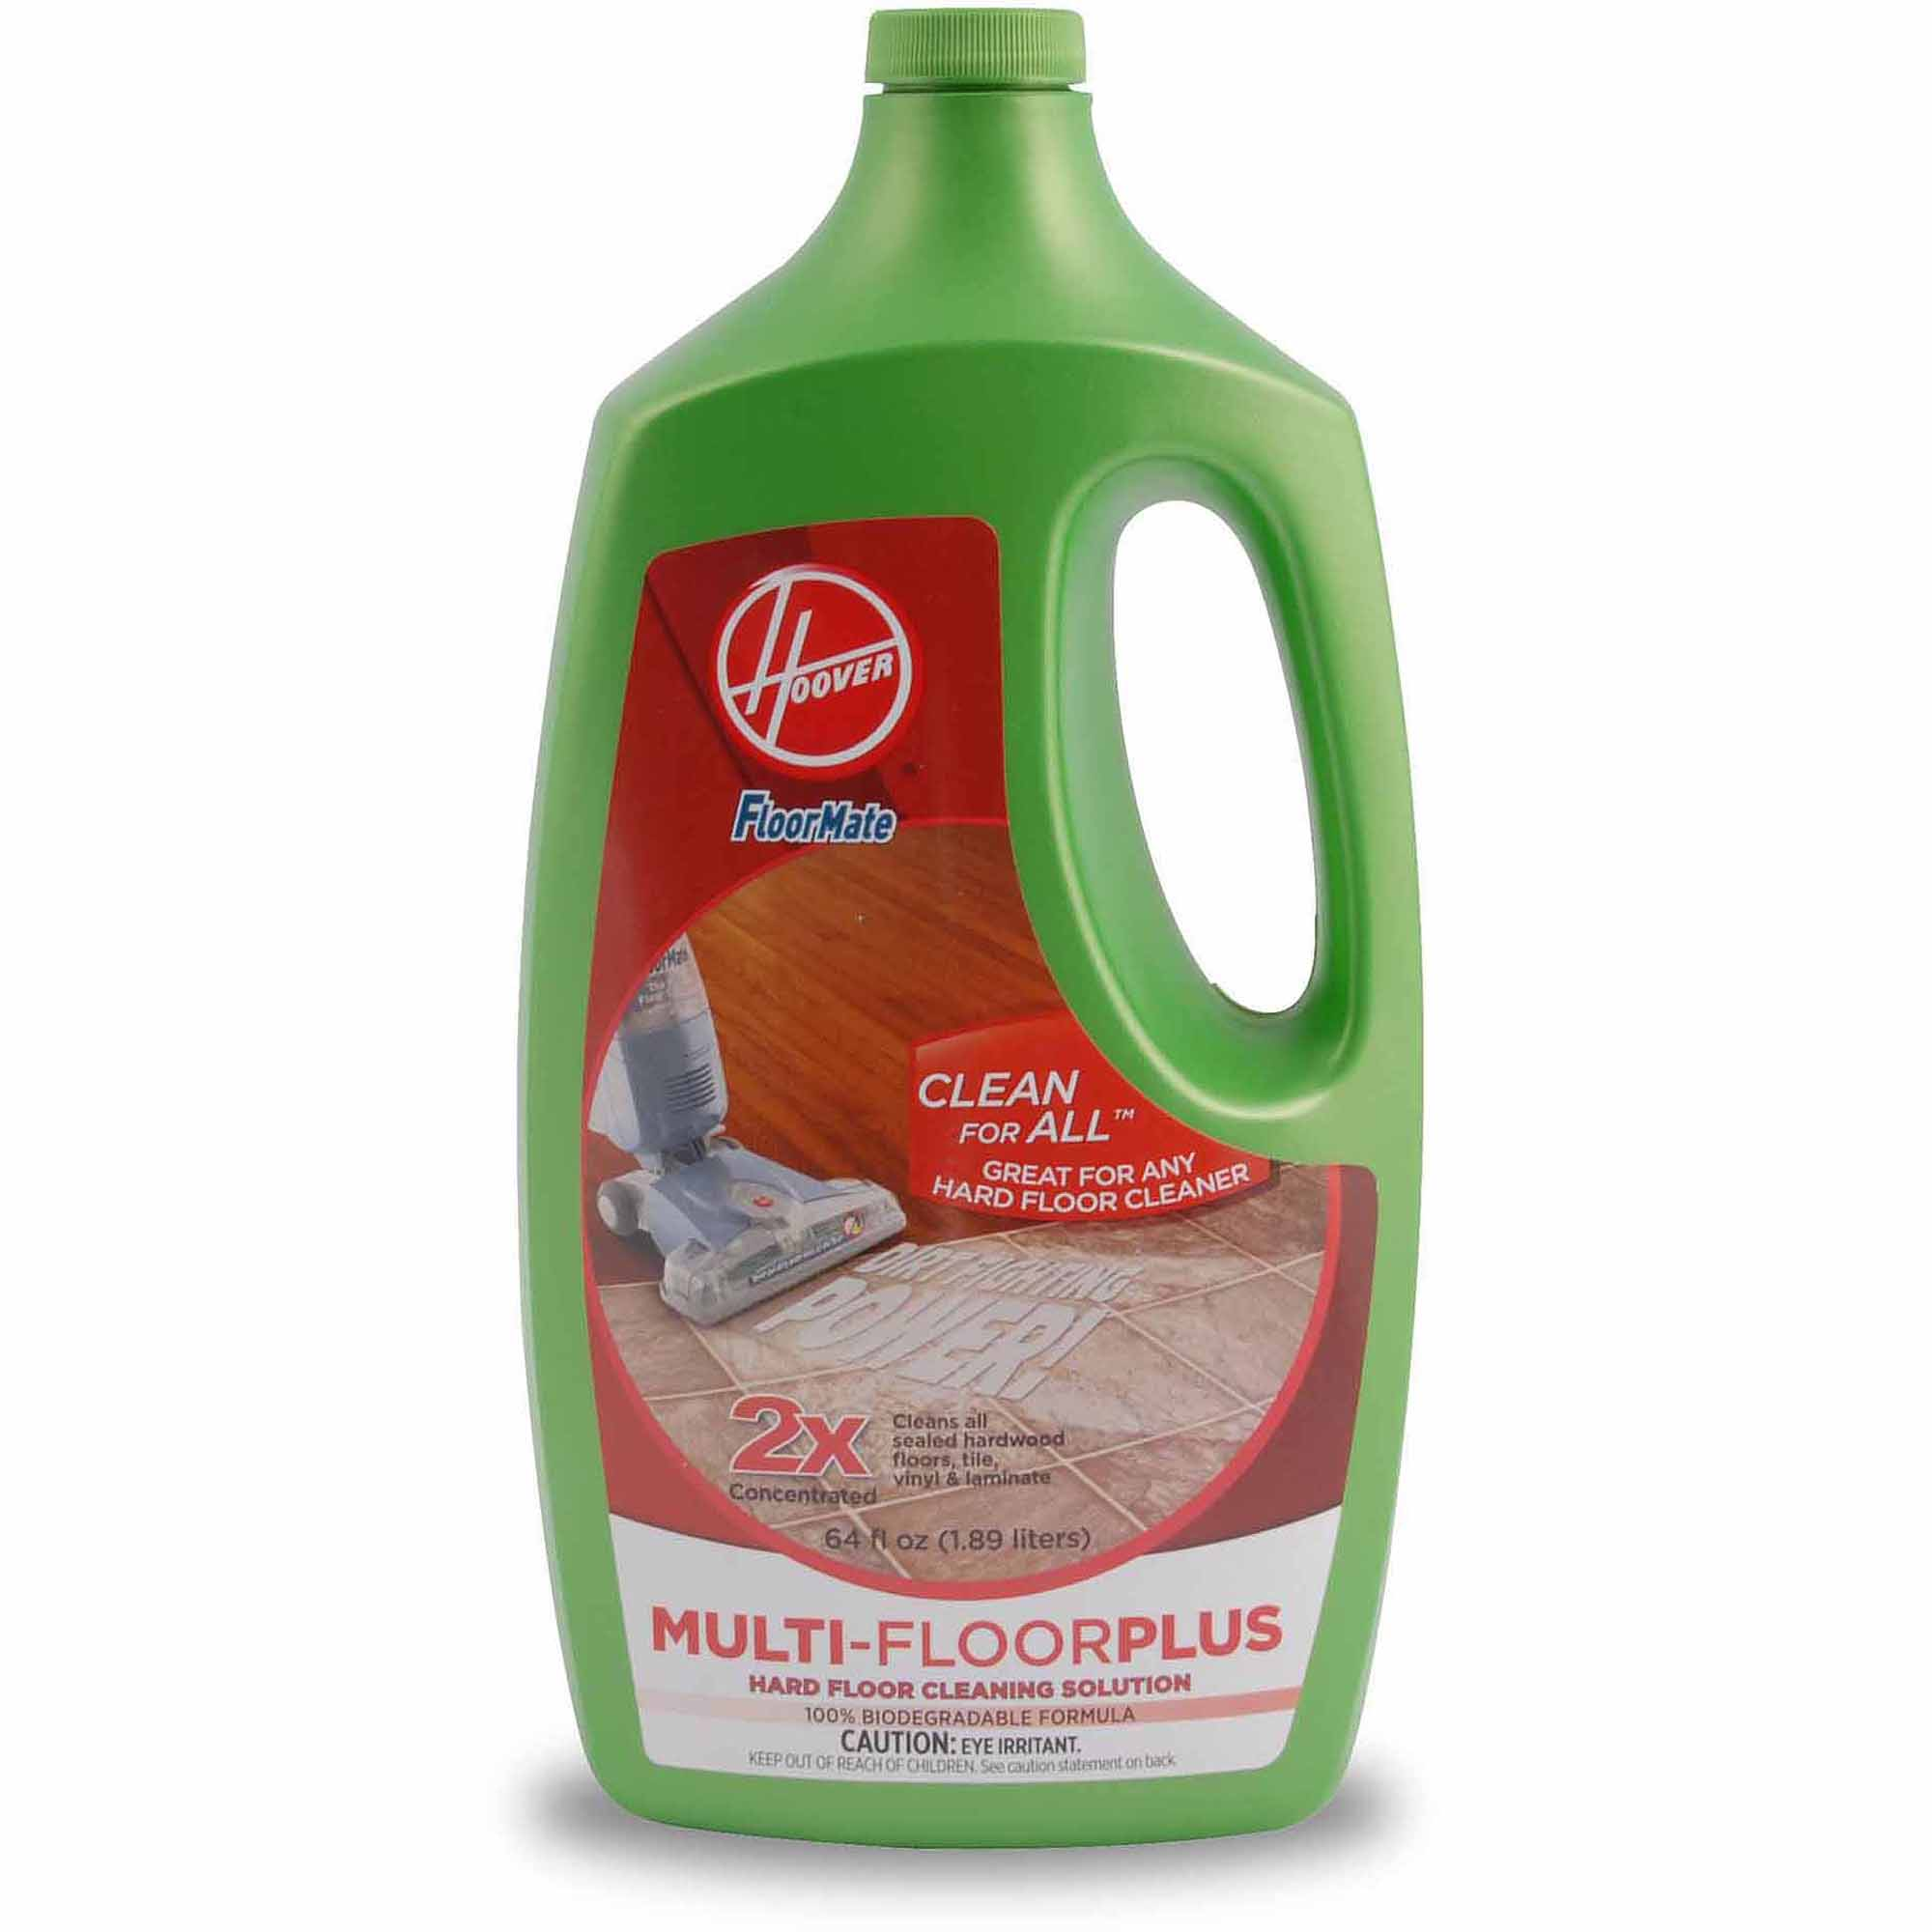 Hoover 2X FloorMate Multi-FloorPlus Hard Floor Cleaning Solution 64 oz, AH30420